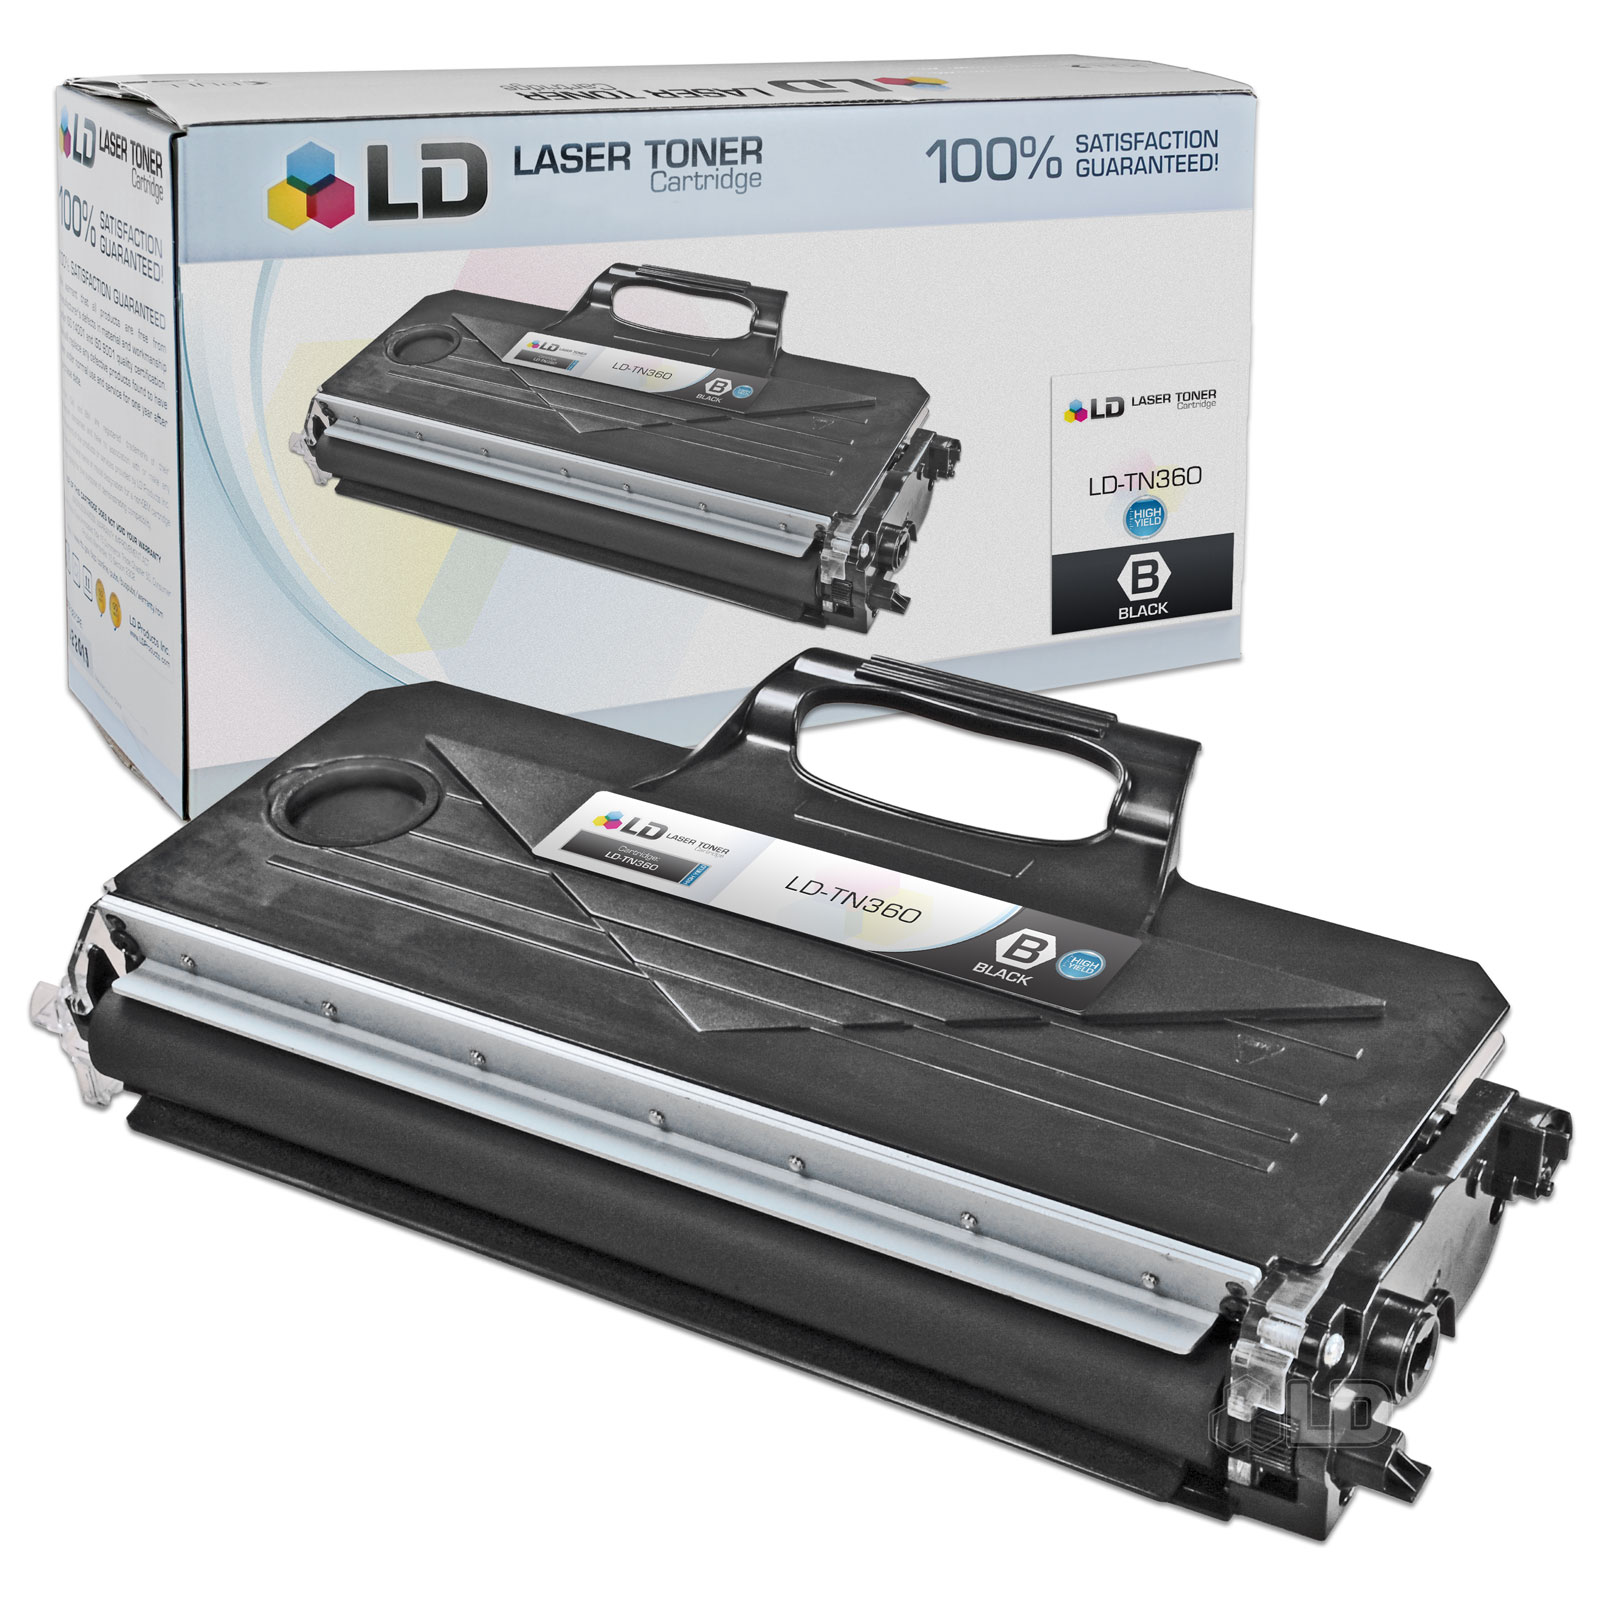 LD Compatible Brother TN360 (TN330) HY Black Toner Cartridge for DCP-7030, DCP7-7040, DCP-7045N, HL-2140, HL-2150N,